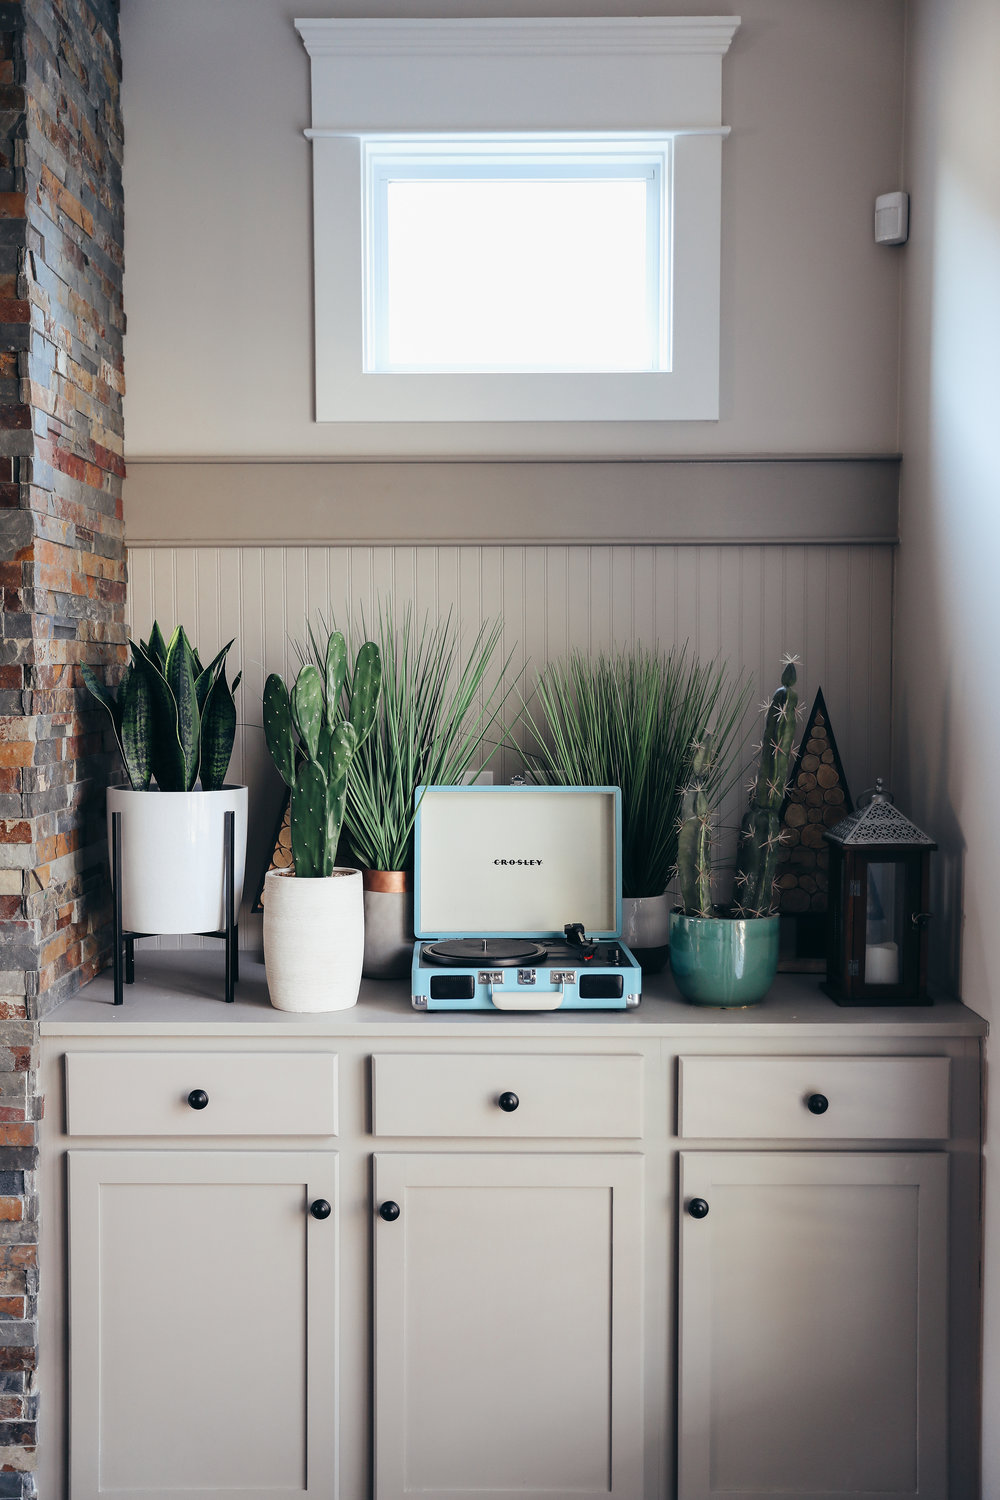 The Best Places to Buy Fake Plants via Chelcey Tate www.chelceytate.com